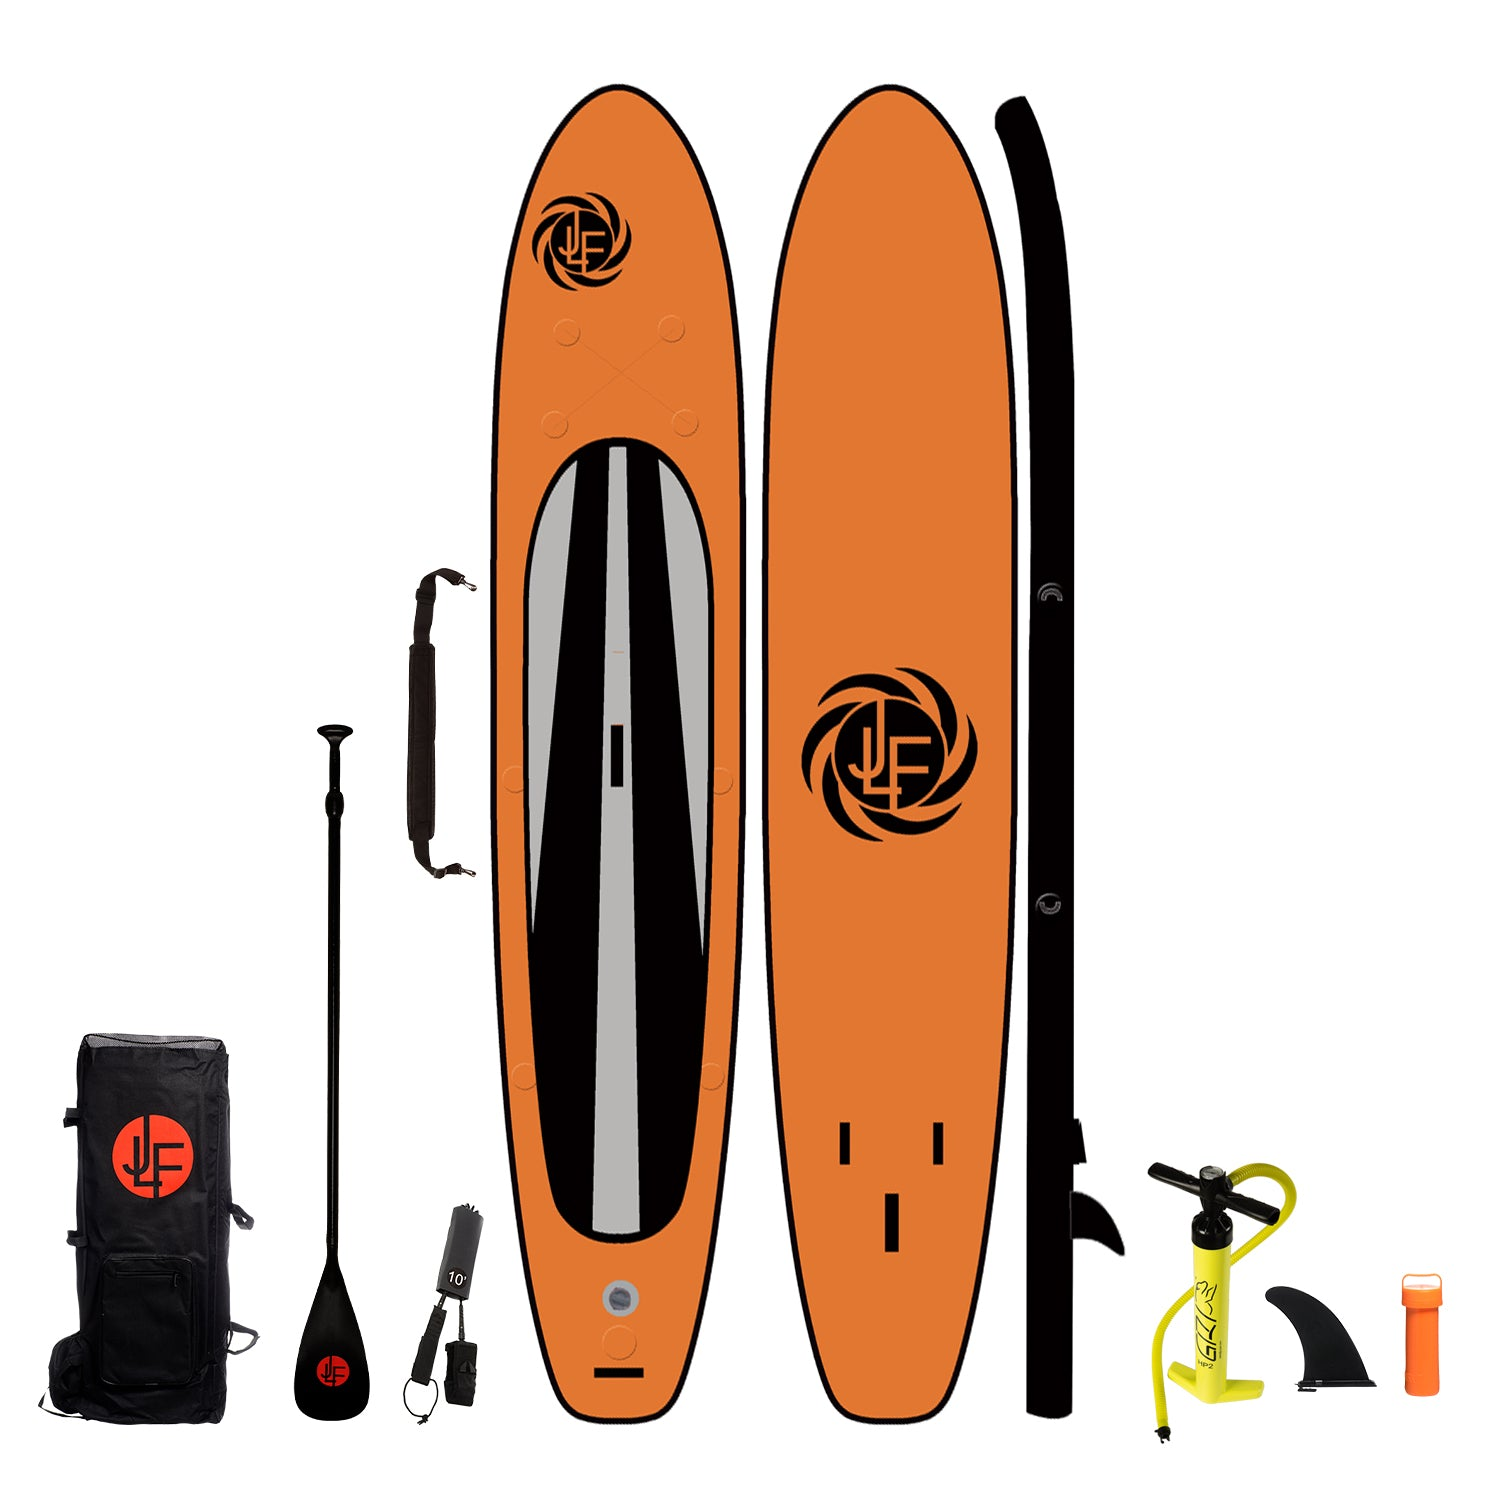 LIMITED EDITION:  JLF 15 Ft Inflatable Stand Up Paddle Board (SUP) Complete Set | Includes Fiberglass Paddle, Carry Strap, Dual Action Hand Pump, Leash, Backpack